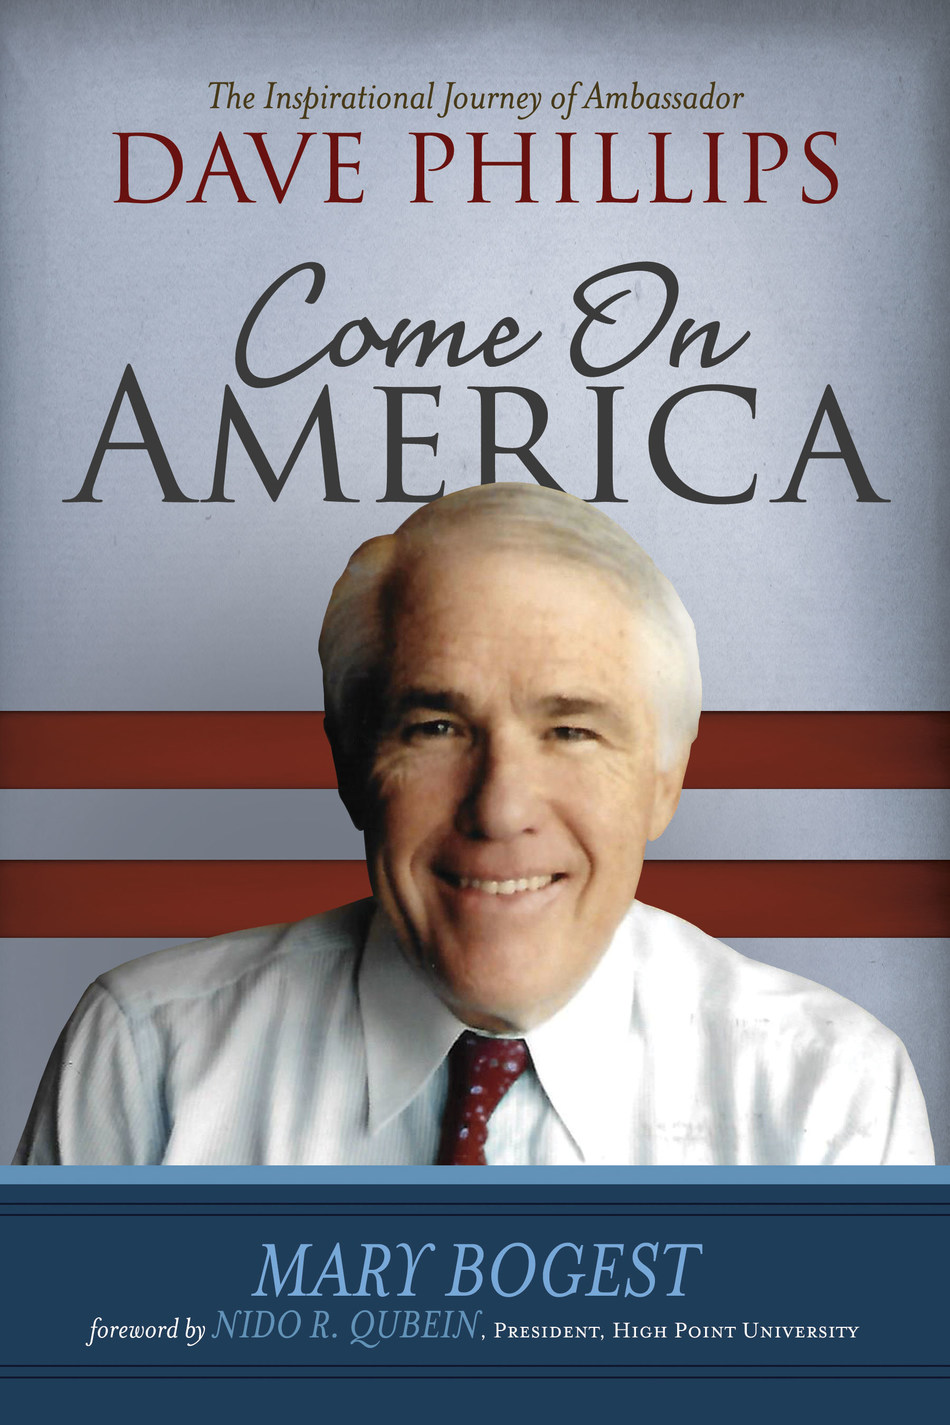 Come On America: The Inspirational Journey of Ambassador Dave Phillips book cover image; Cover Design: Chris Ward